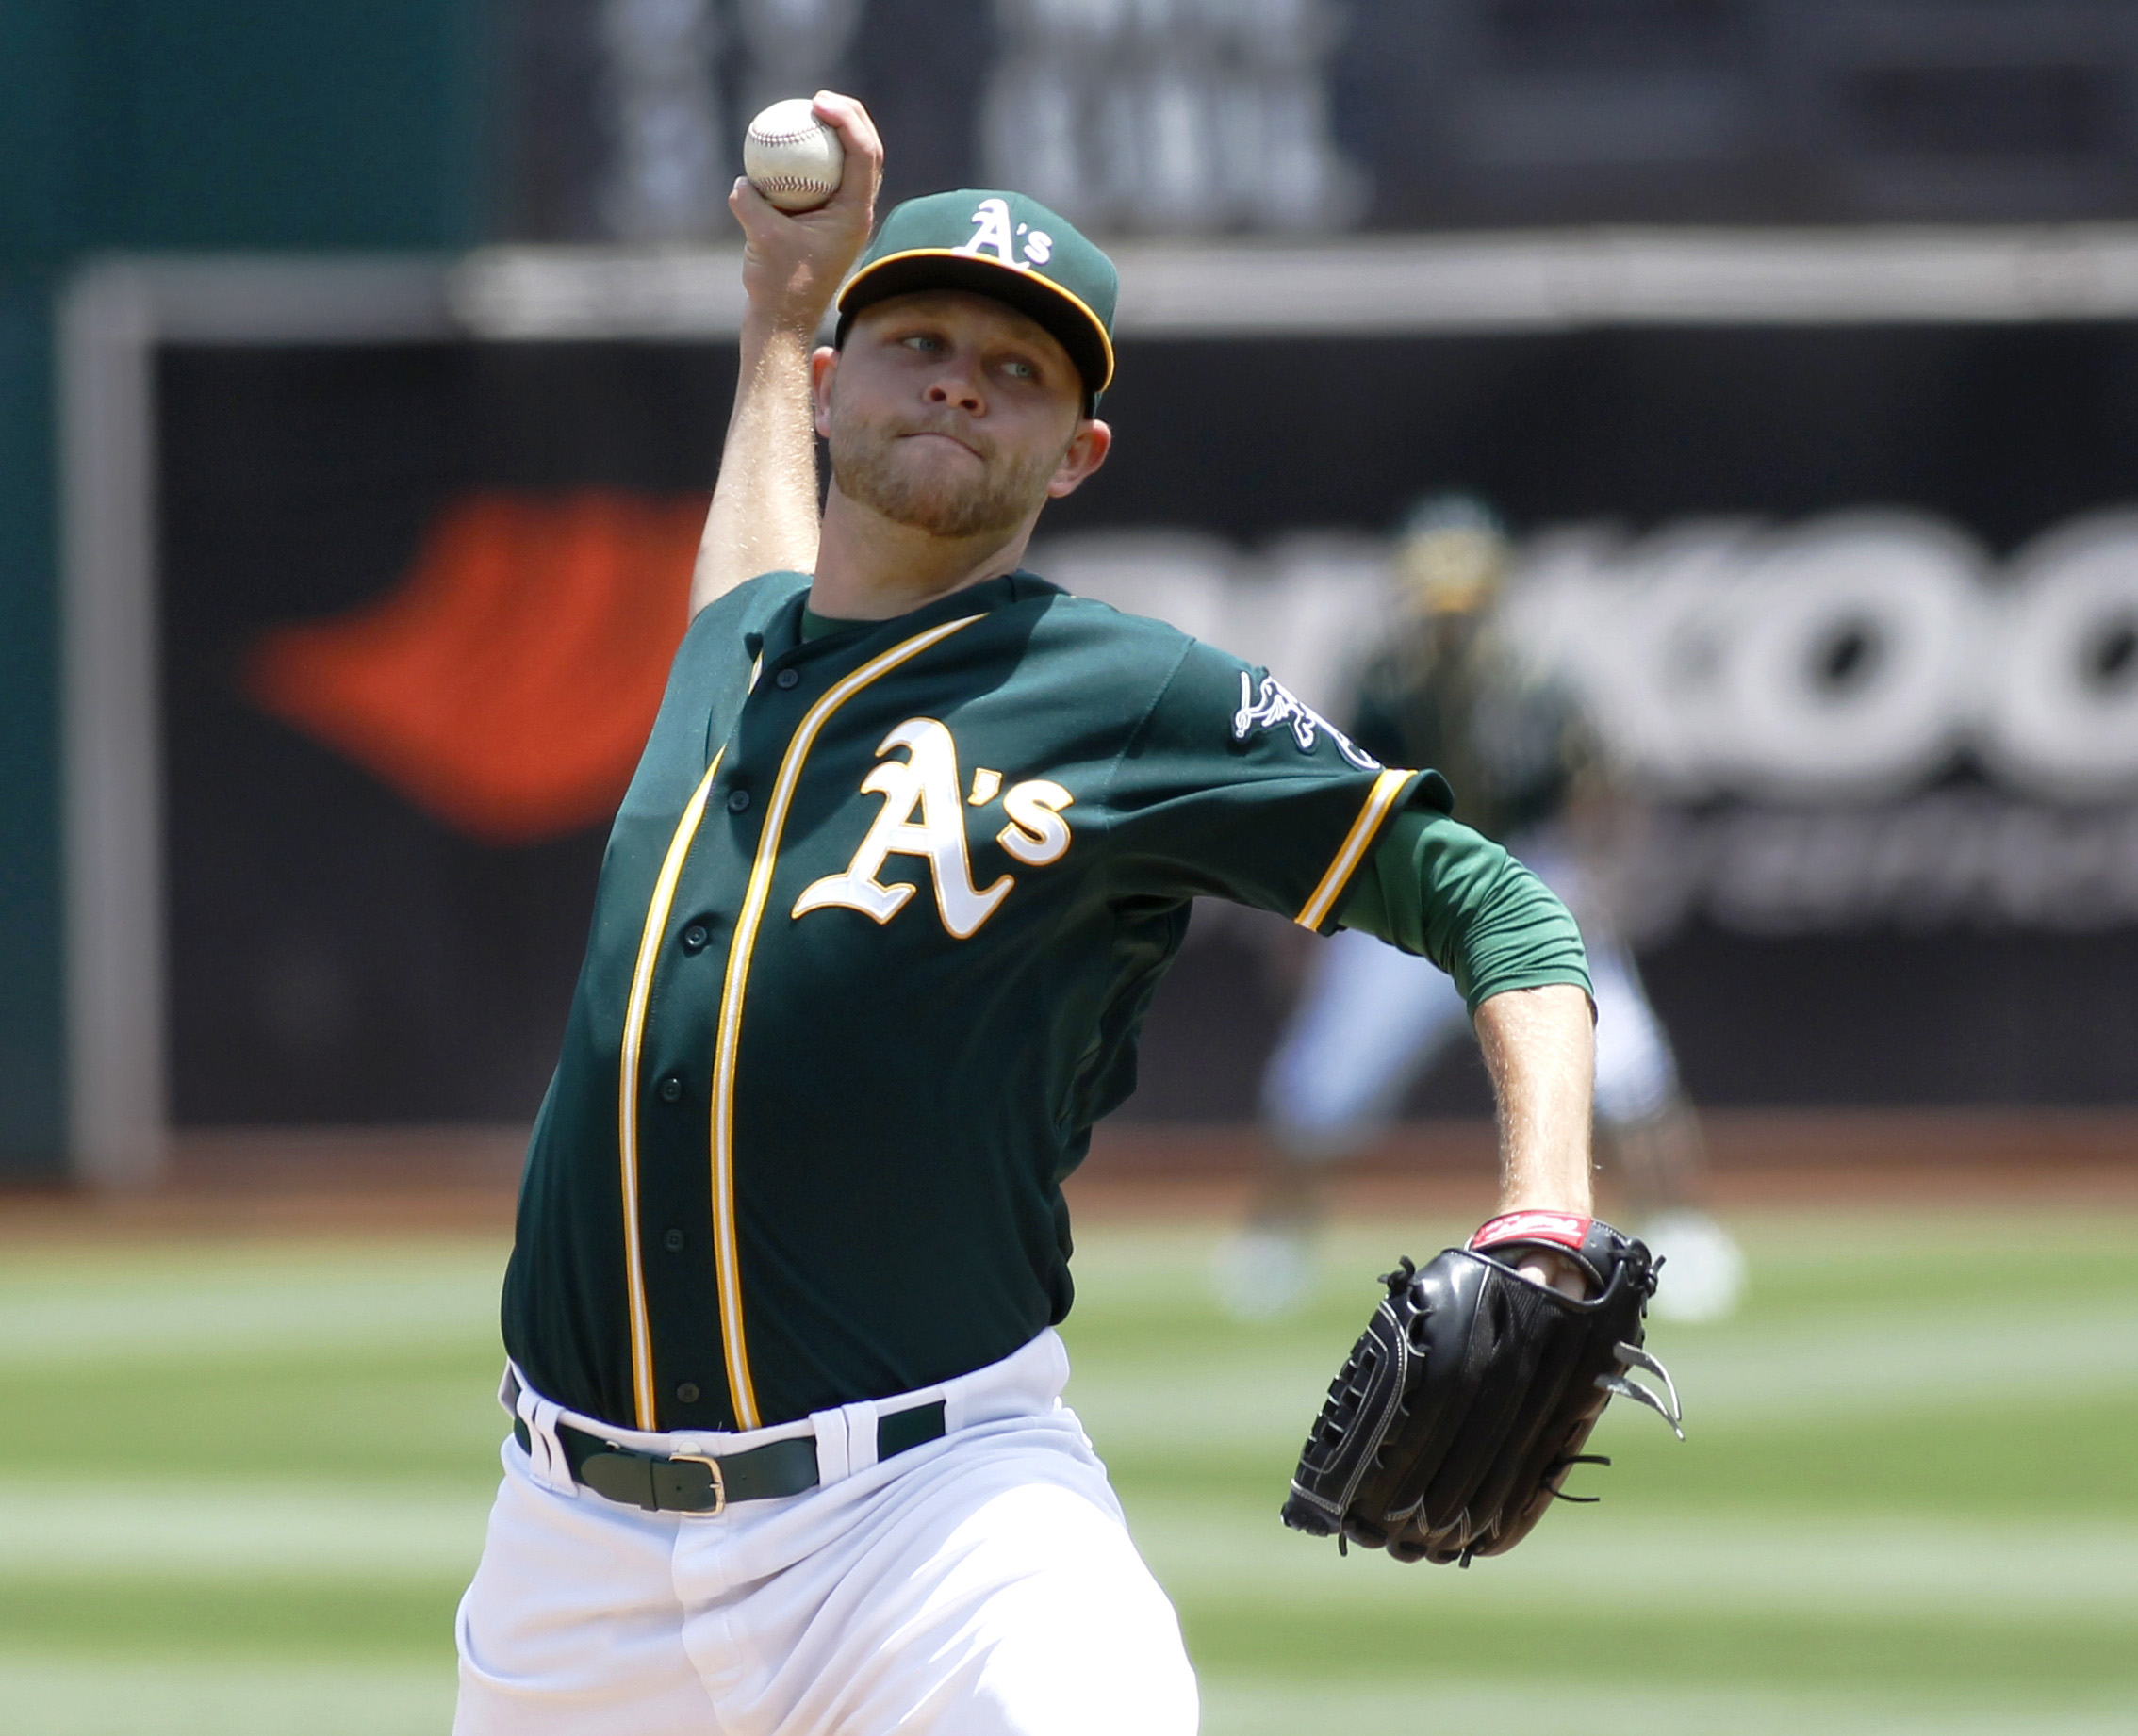 Oakland Athletics pitcher Jesse Hahn throws to the Los Angeles Angels during the first inning of a baseball game, Saturday, June 20, 2015, in Oakland, Calif.  (AP Photo/George Nikitin)